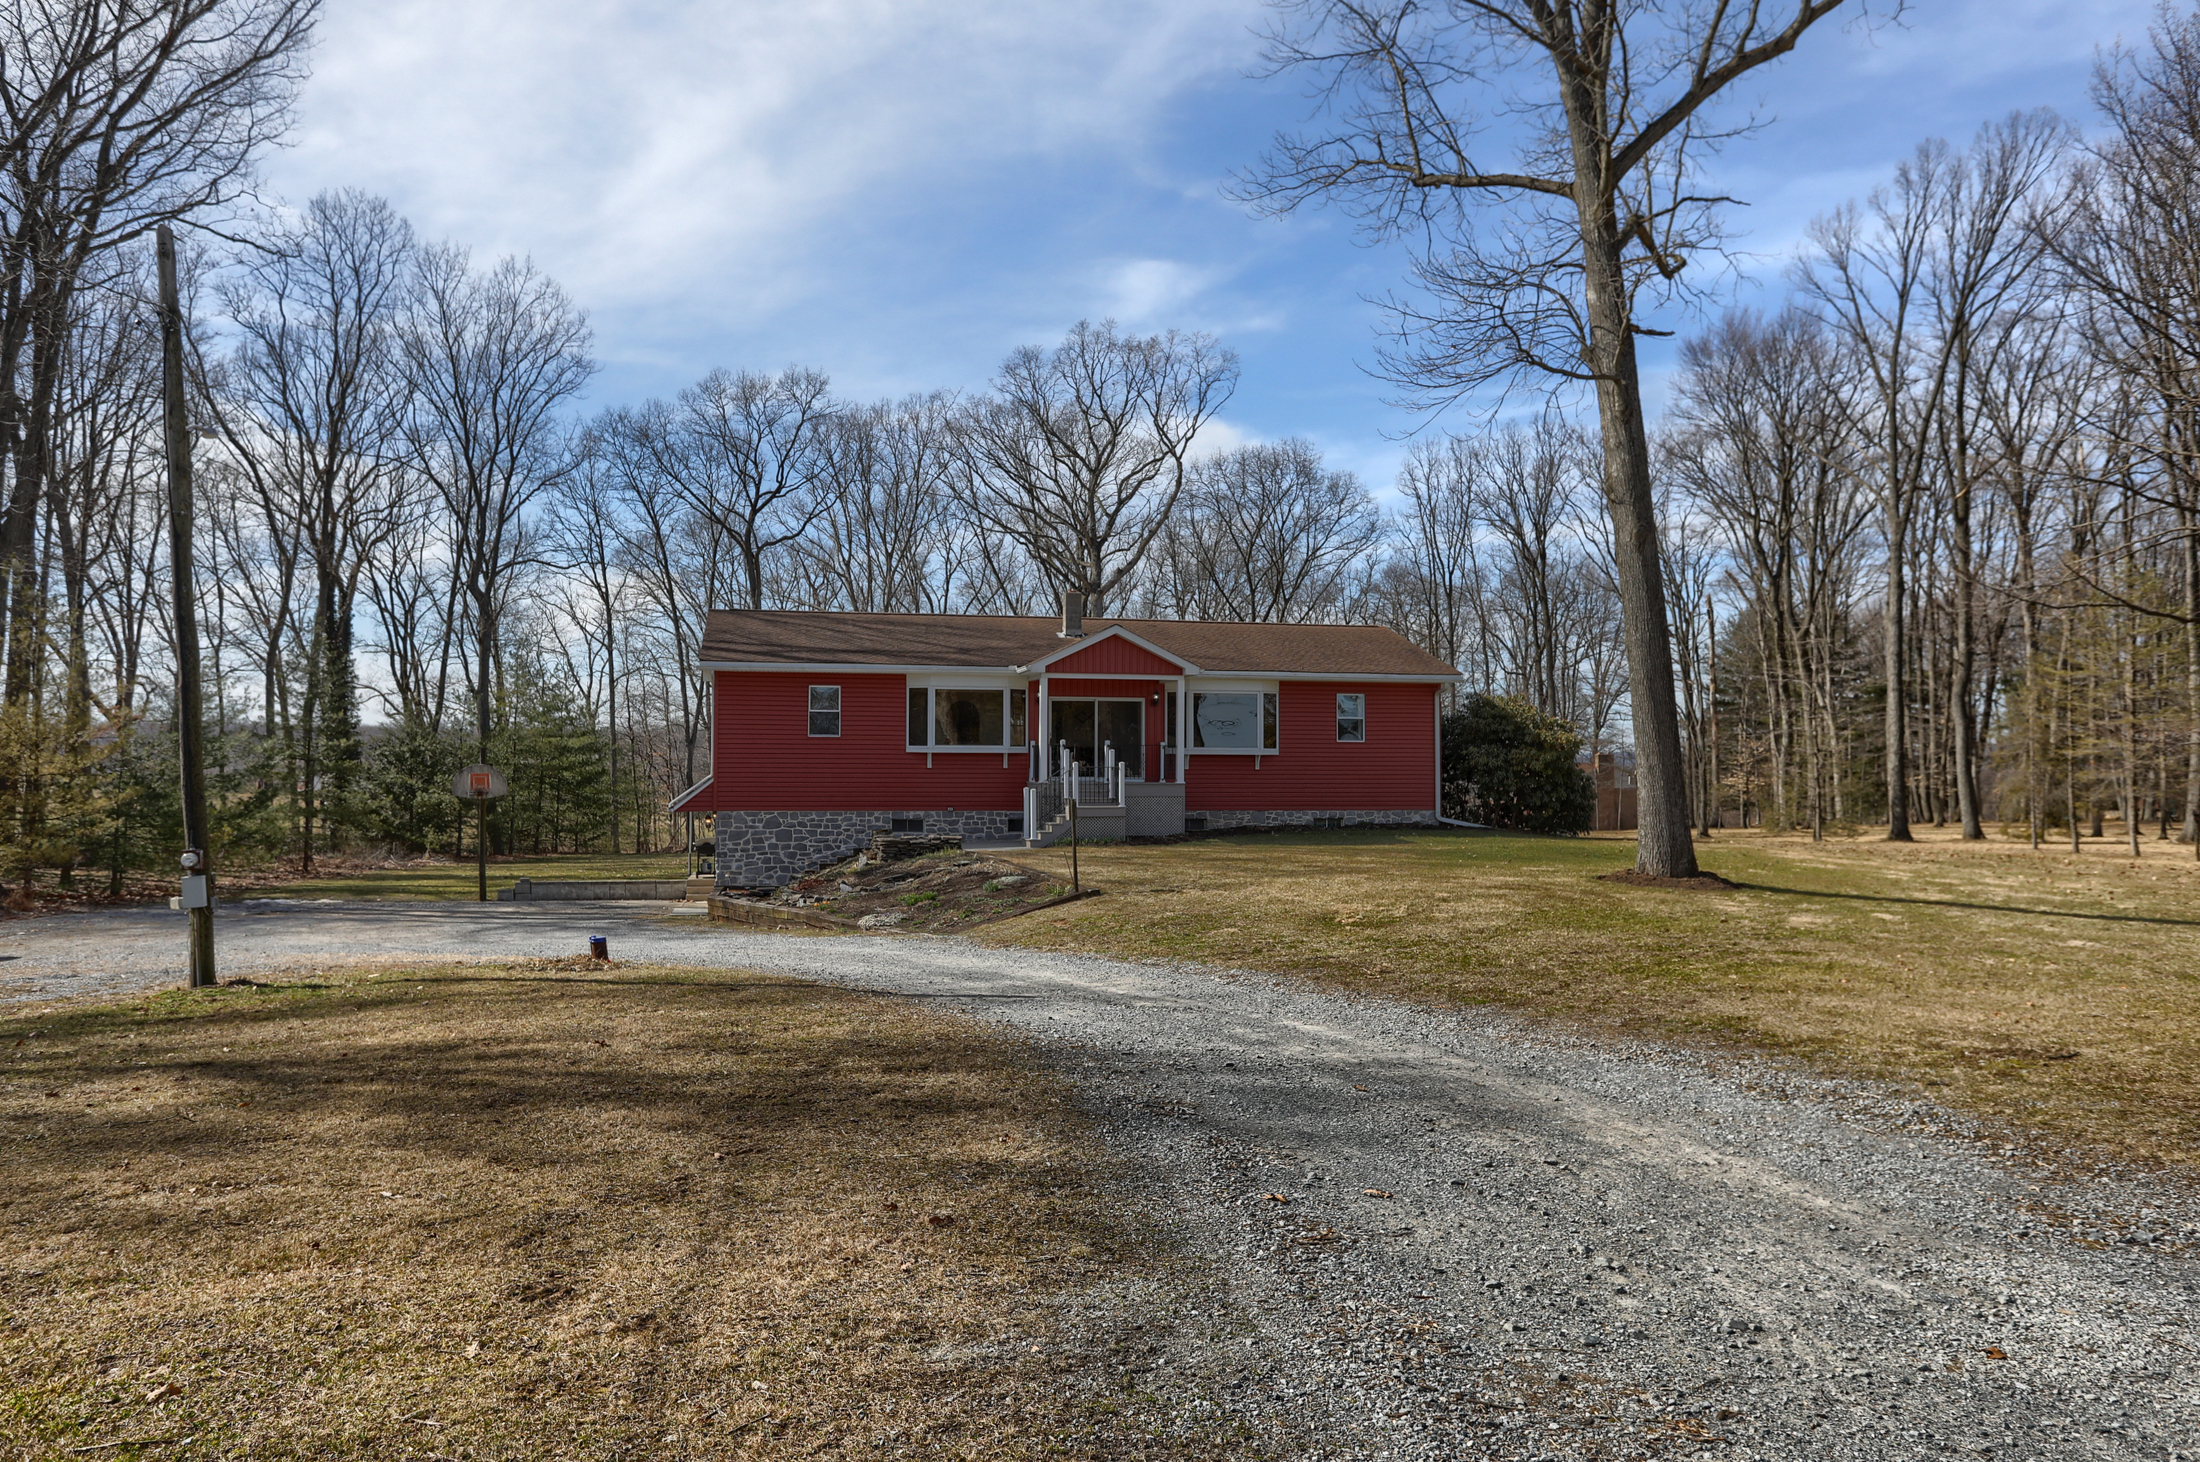 285 Strack Drive - schedule your showing today of this home with quiet wooded setting